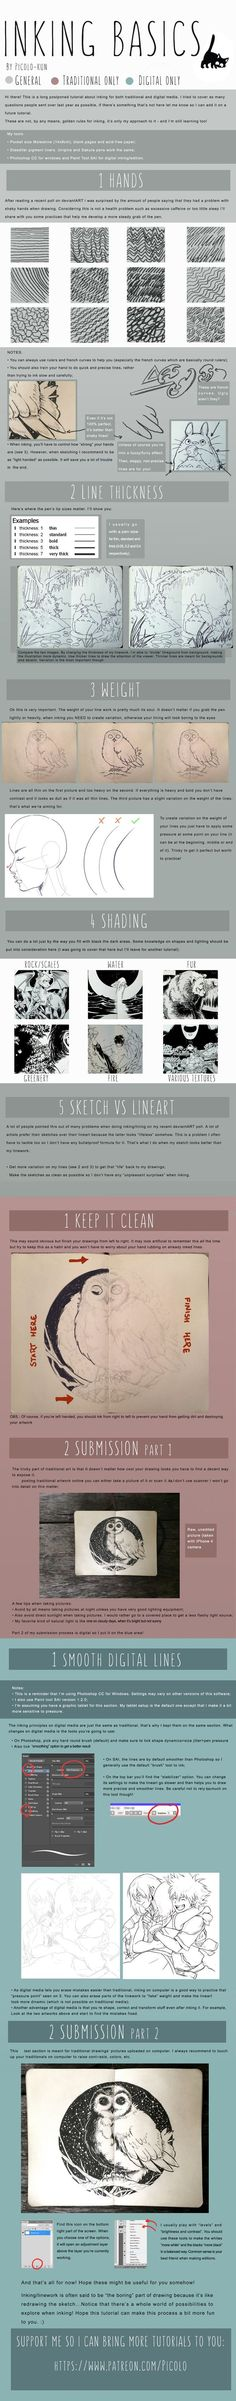 Amazing inking tutorial, should've read this yesterday !: